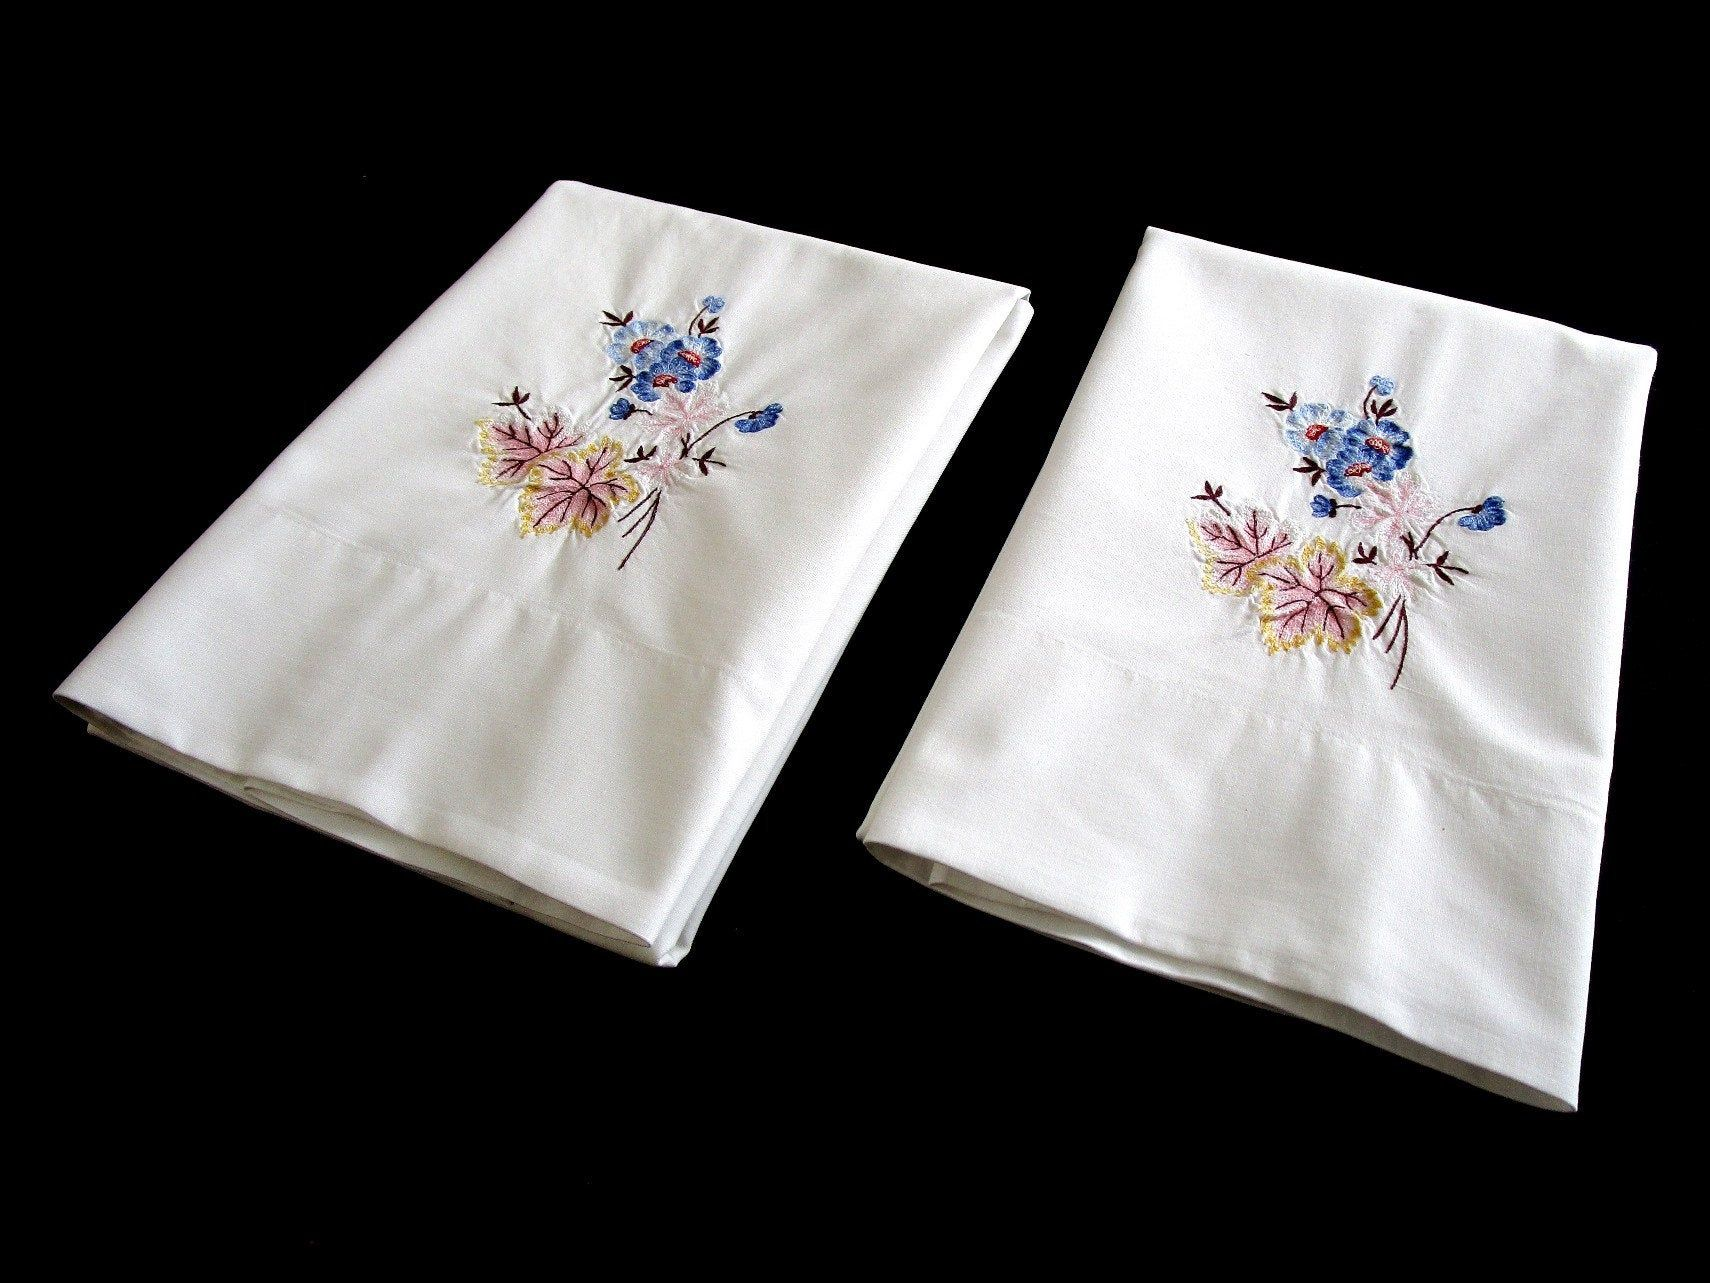 "Vintage Pair Floral Embroidered Pillowcases, Cotton/Poly Pillow Cases, Pink, Blue, Yellow, 18 3/4"" x 32 1/4"" (dp096)"